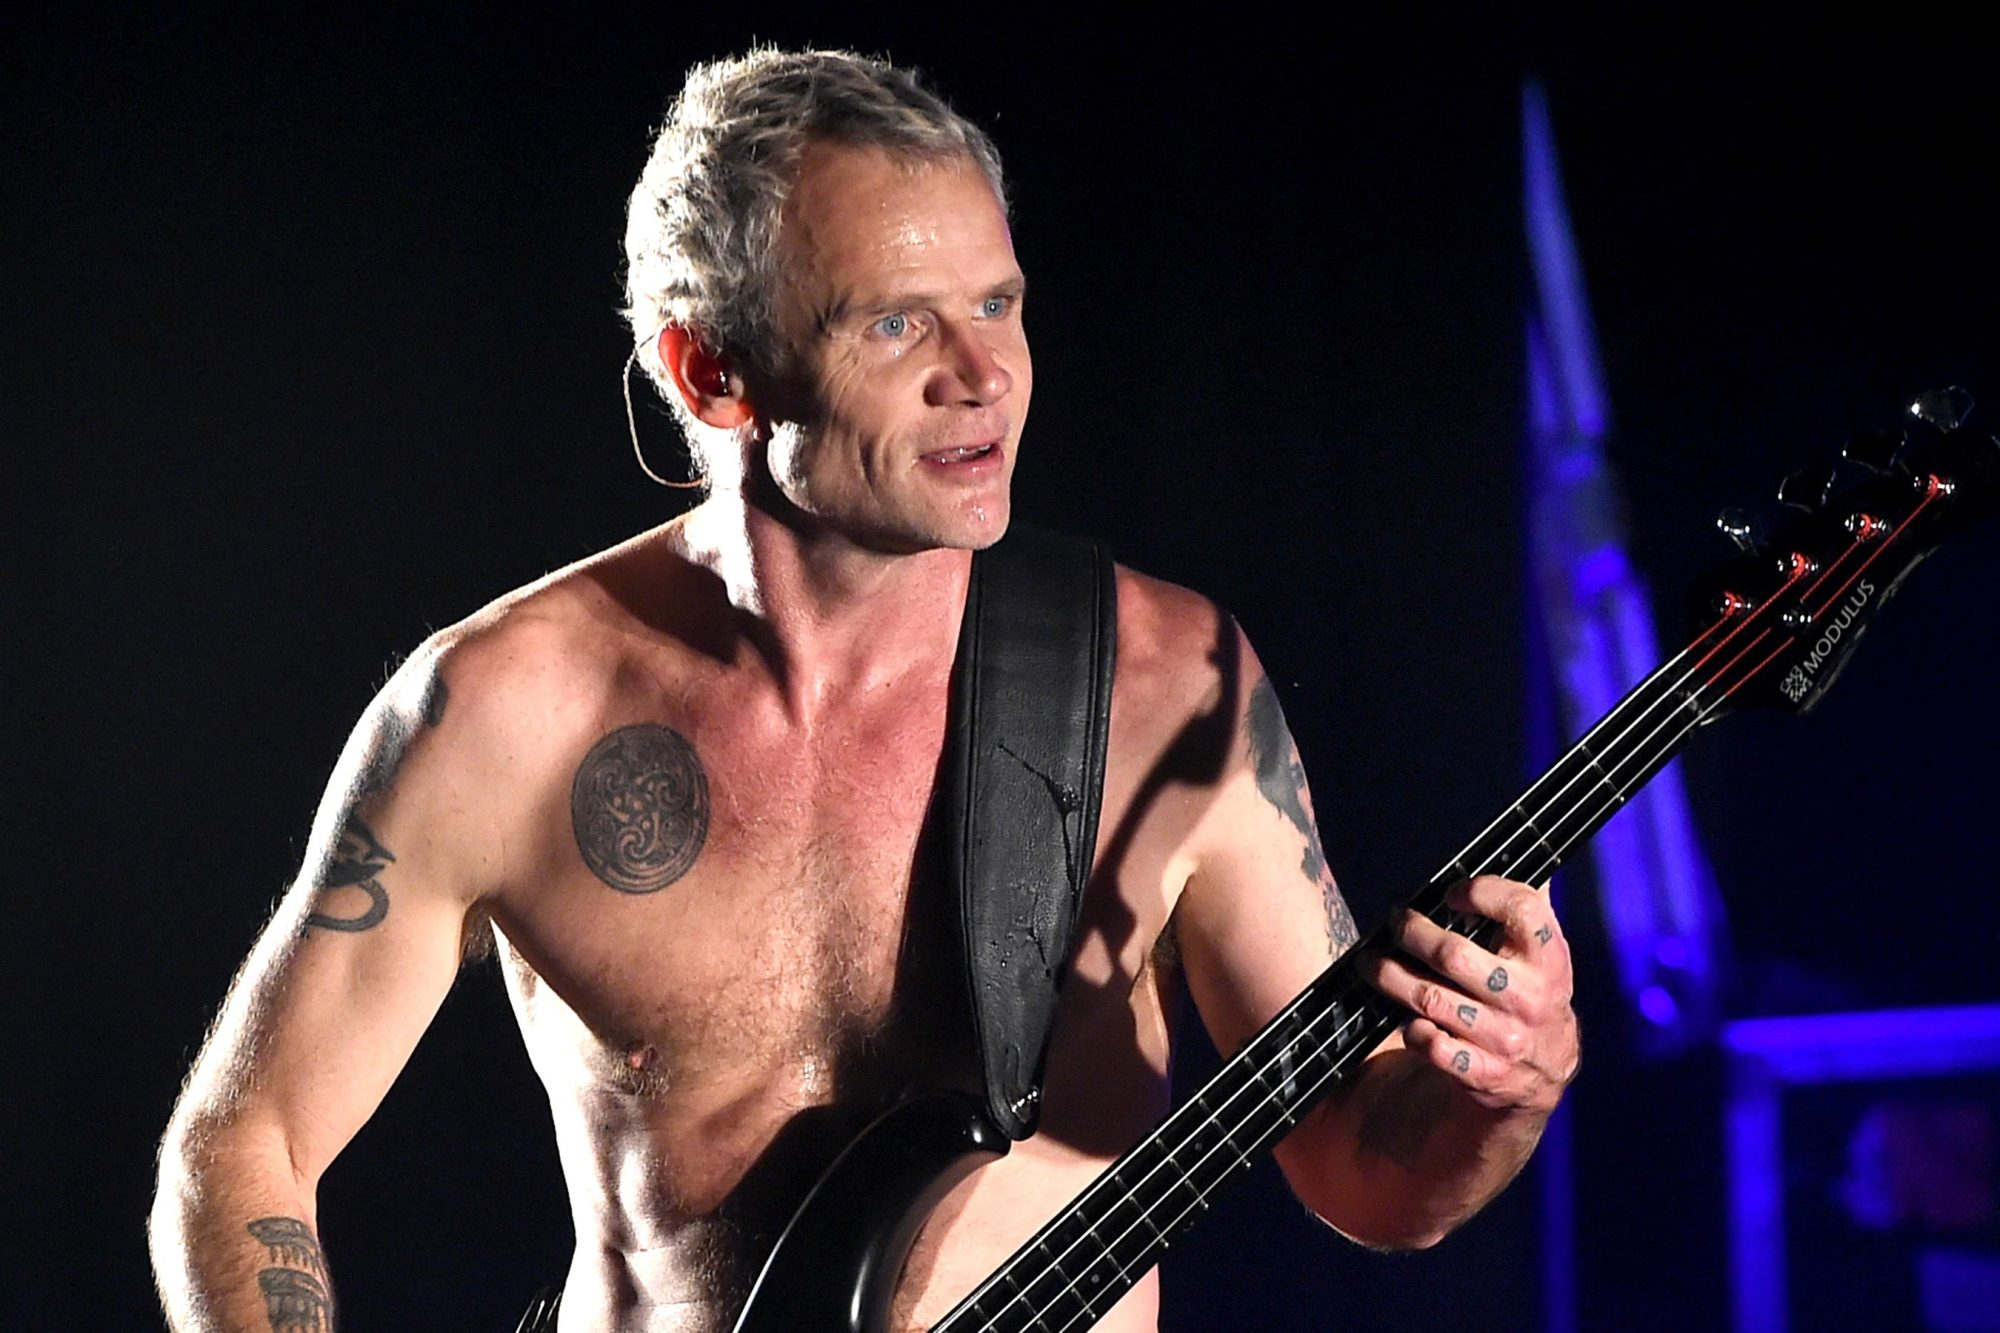 Red Hot Chili Peppers 'Feel The Bern' Concert To Benefit Presidential Candidate Bernie Sanders